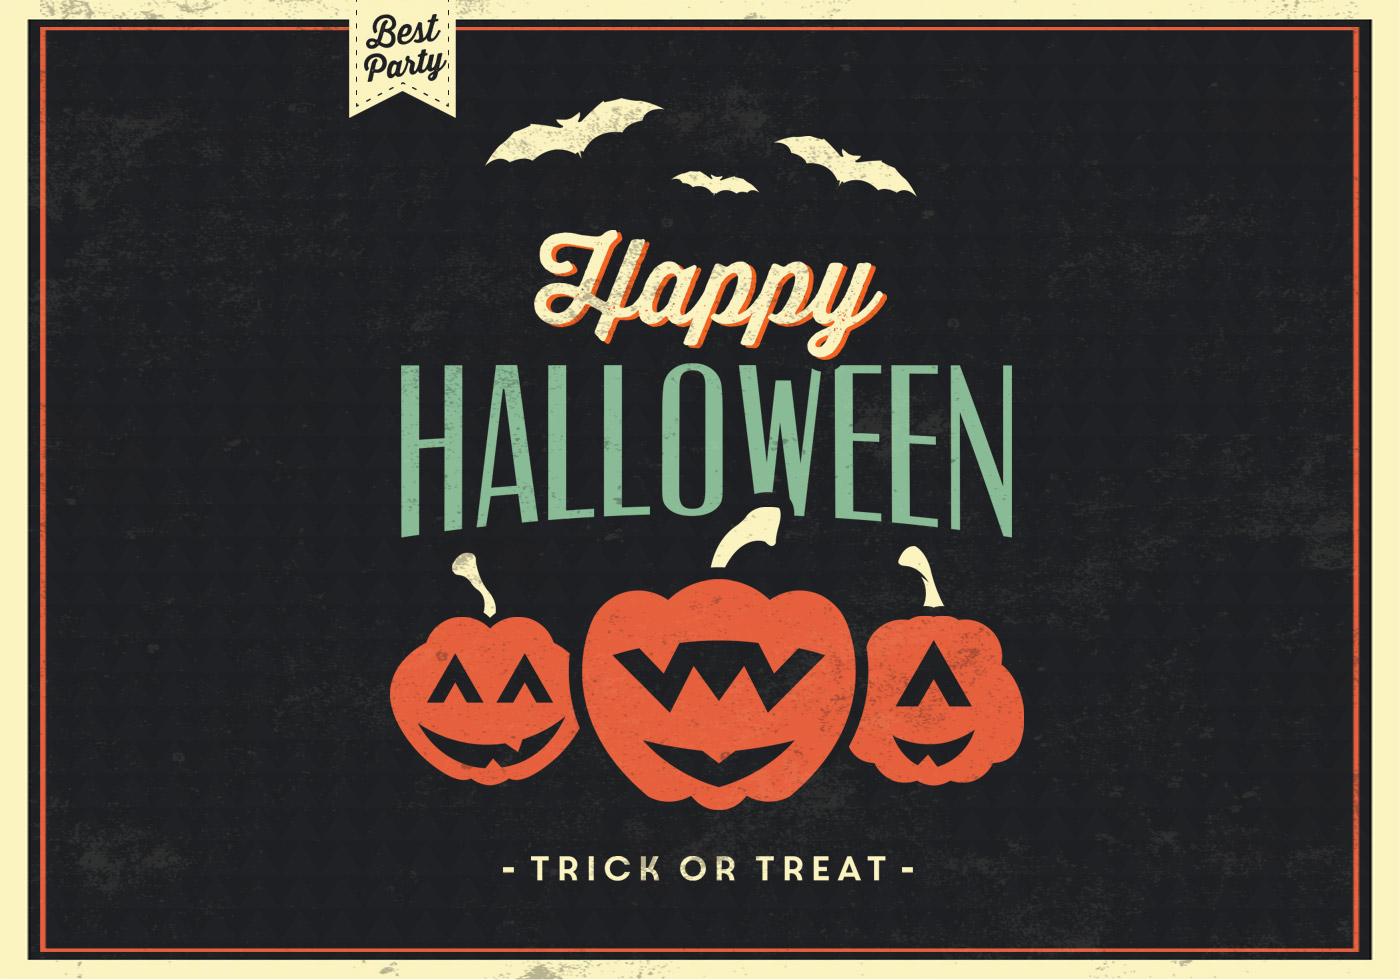 Grunge happy halloween psd background free photoshop brushes at brusheezy for Halloween psd